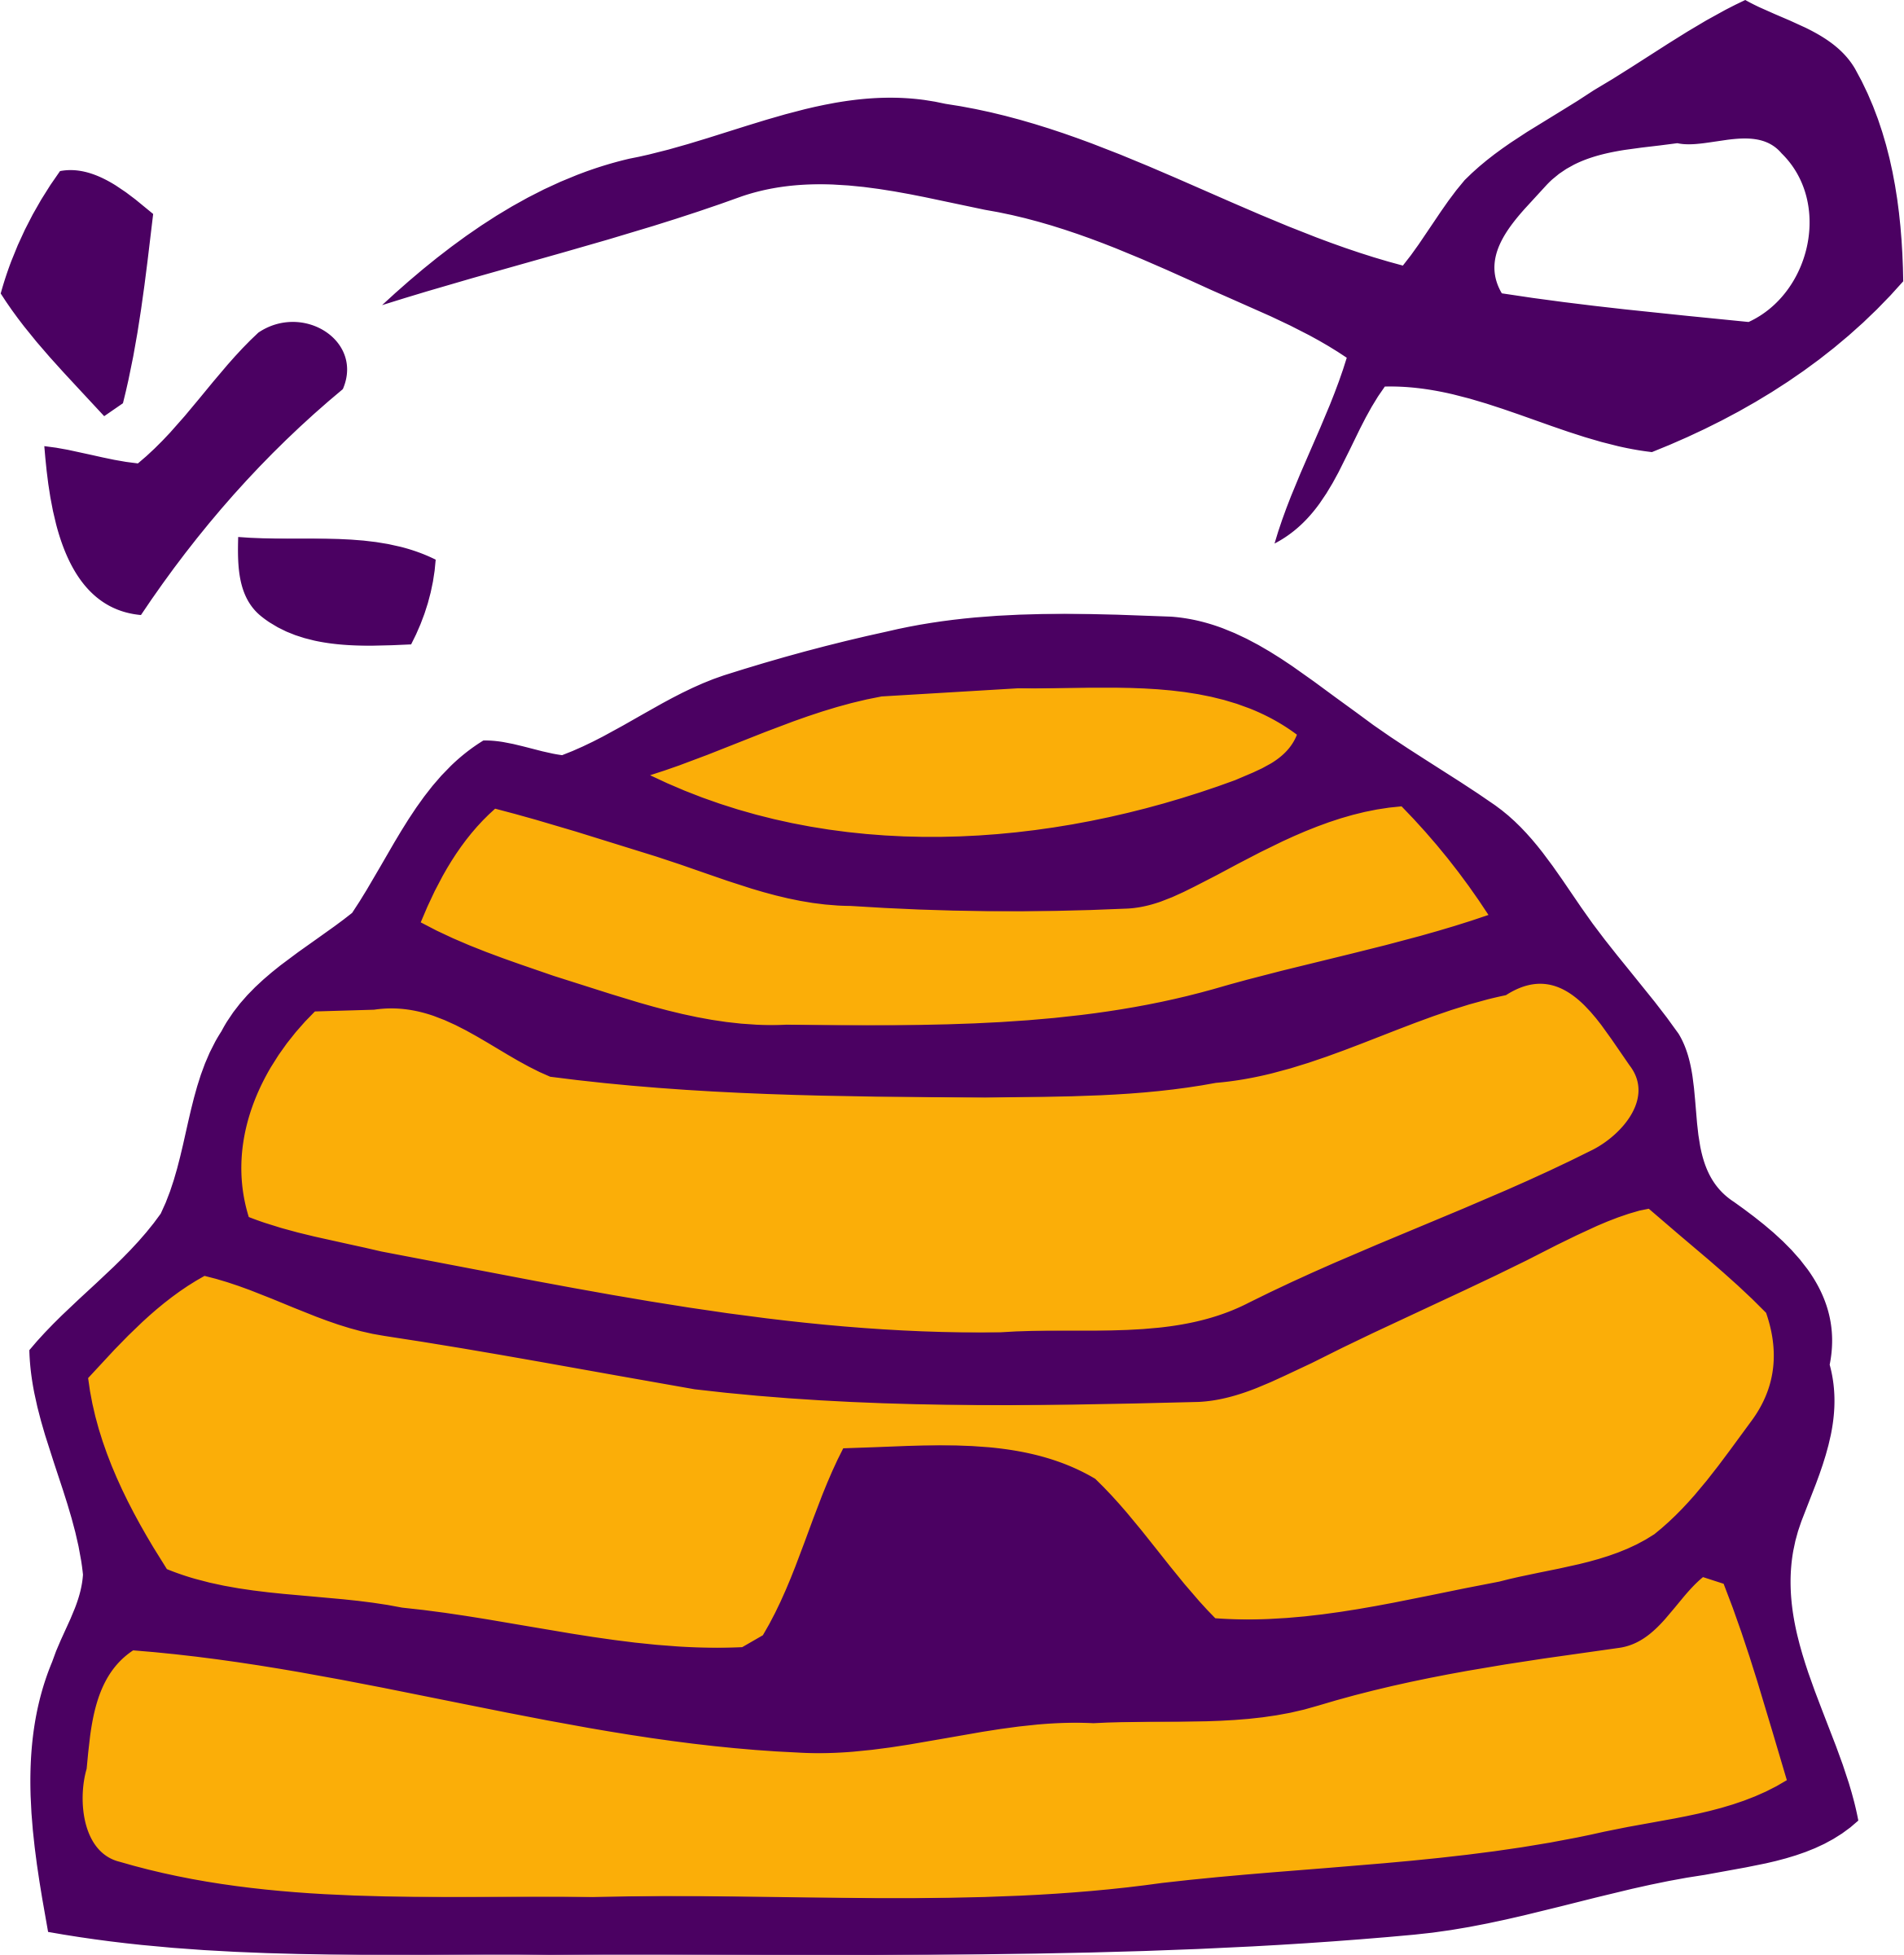 Beehive vectorized by Firkin